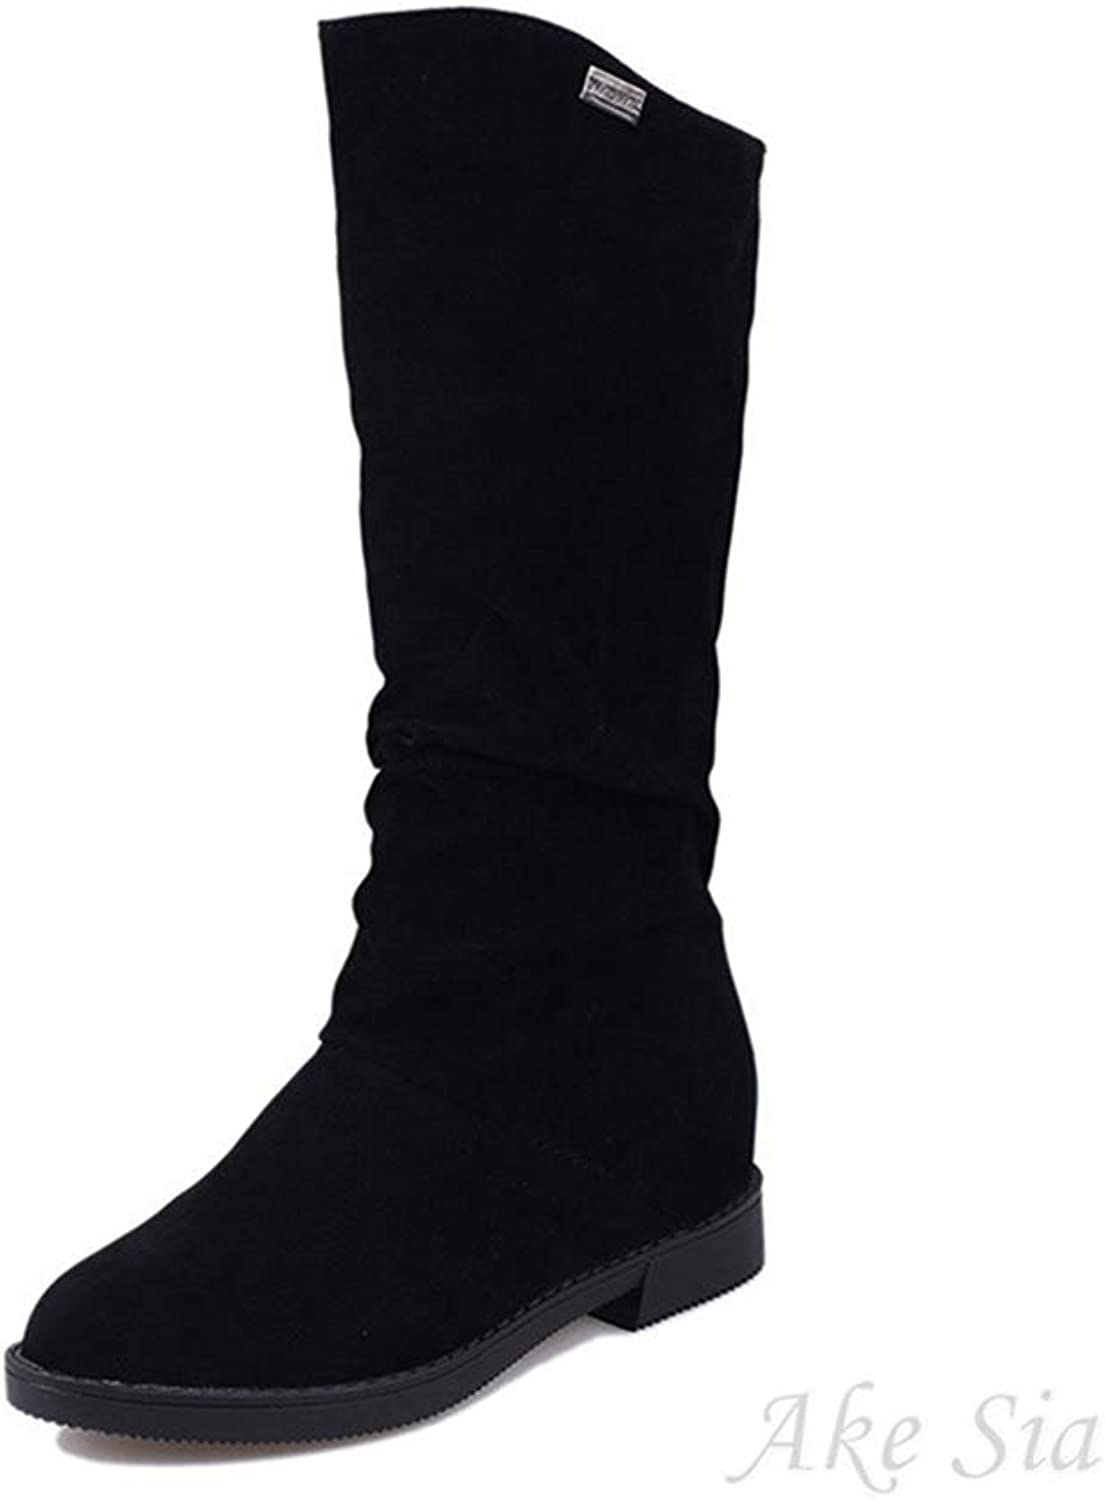 Hoxekle Autumn Winter Women Boots for Female Ladies Height Increased Low Heel shoes Woman Mid Calf High Boots